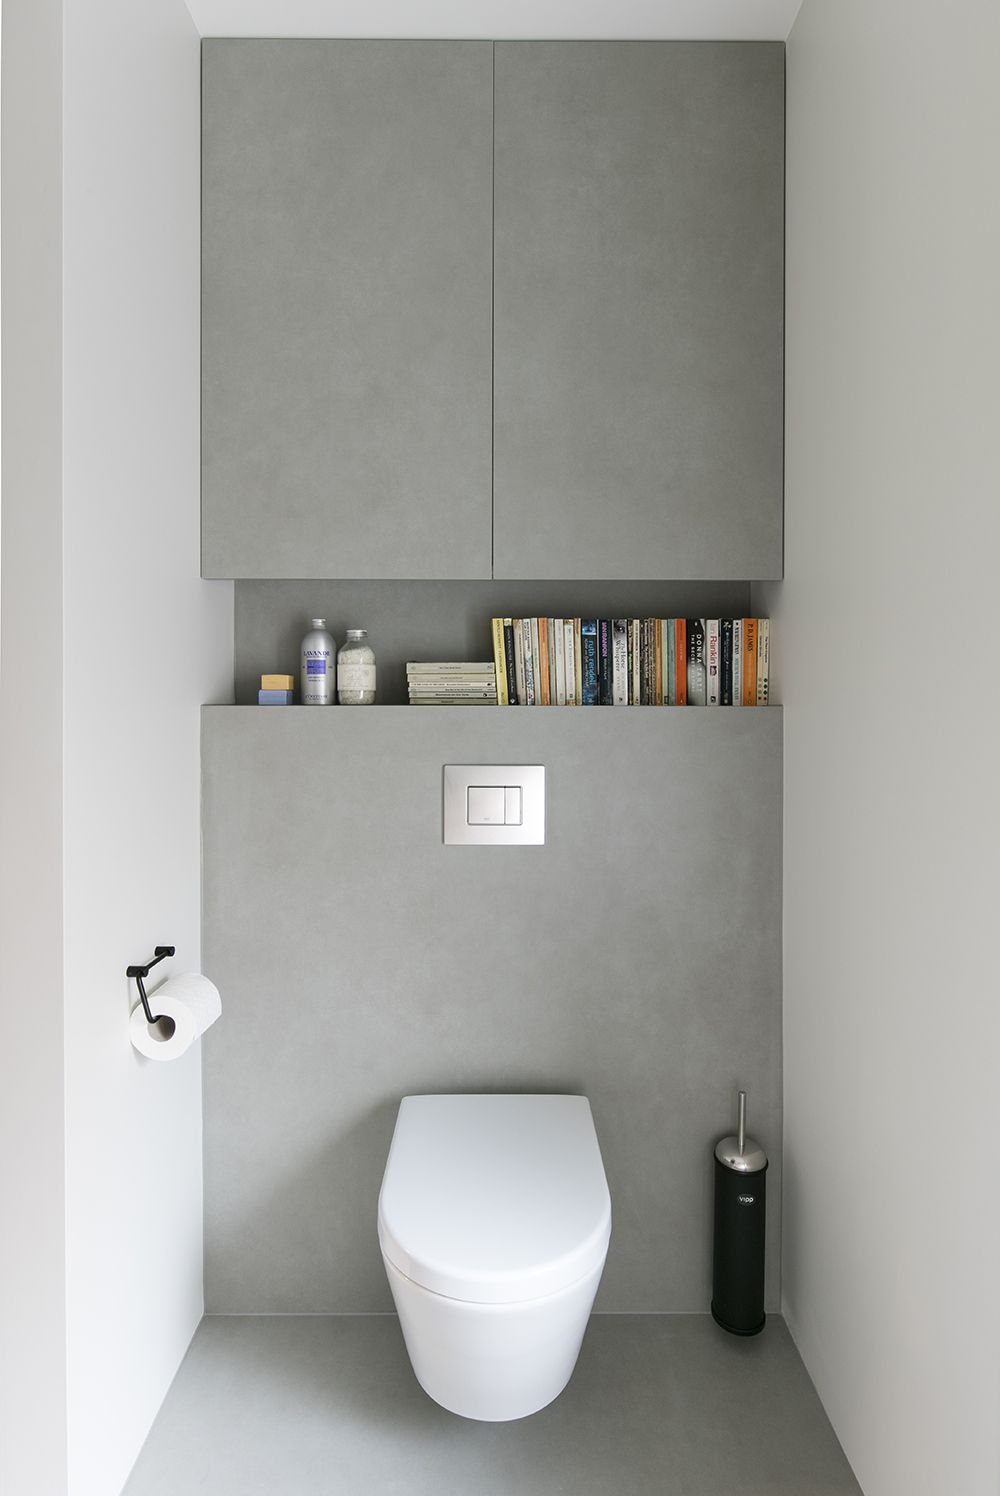 Kleine Toilette A Sleek, Polished Look Provides A Calming Feel This Cloak Room. We Used A Porcelain Tile Called Pietra Di O… | Badezimmer, Badezimmerideen, Kleine Badezimmer Design